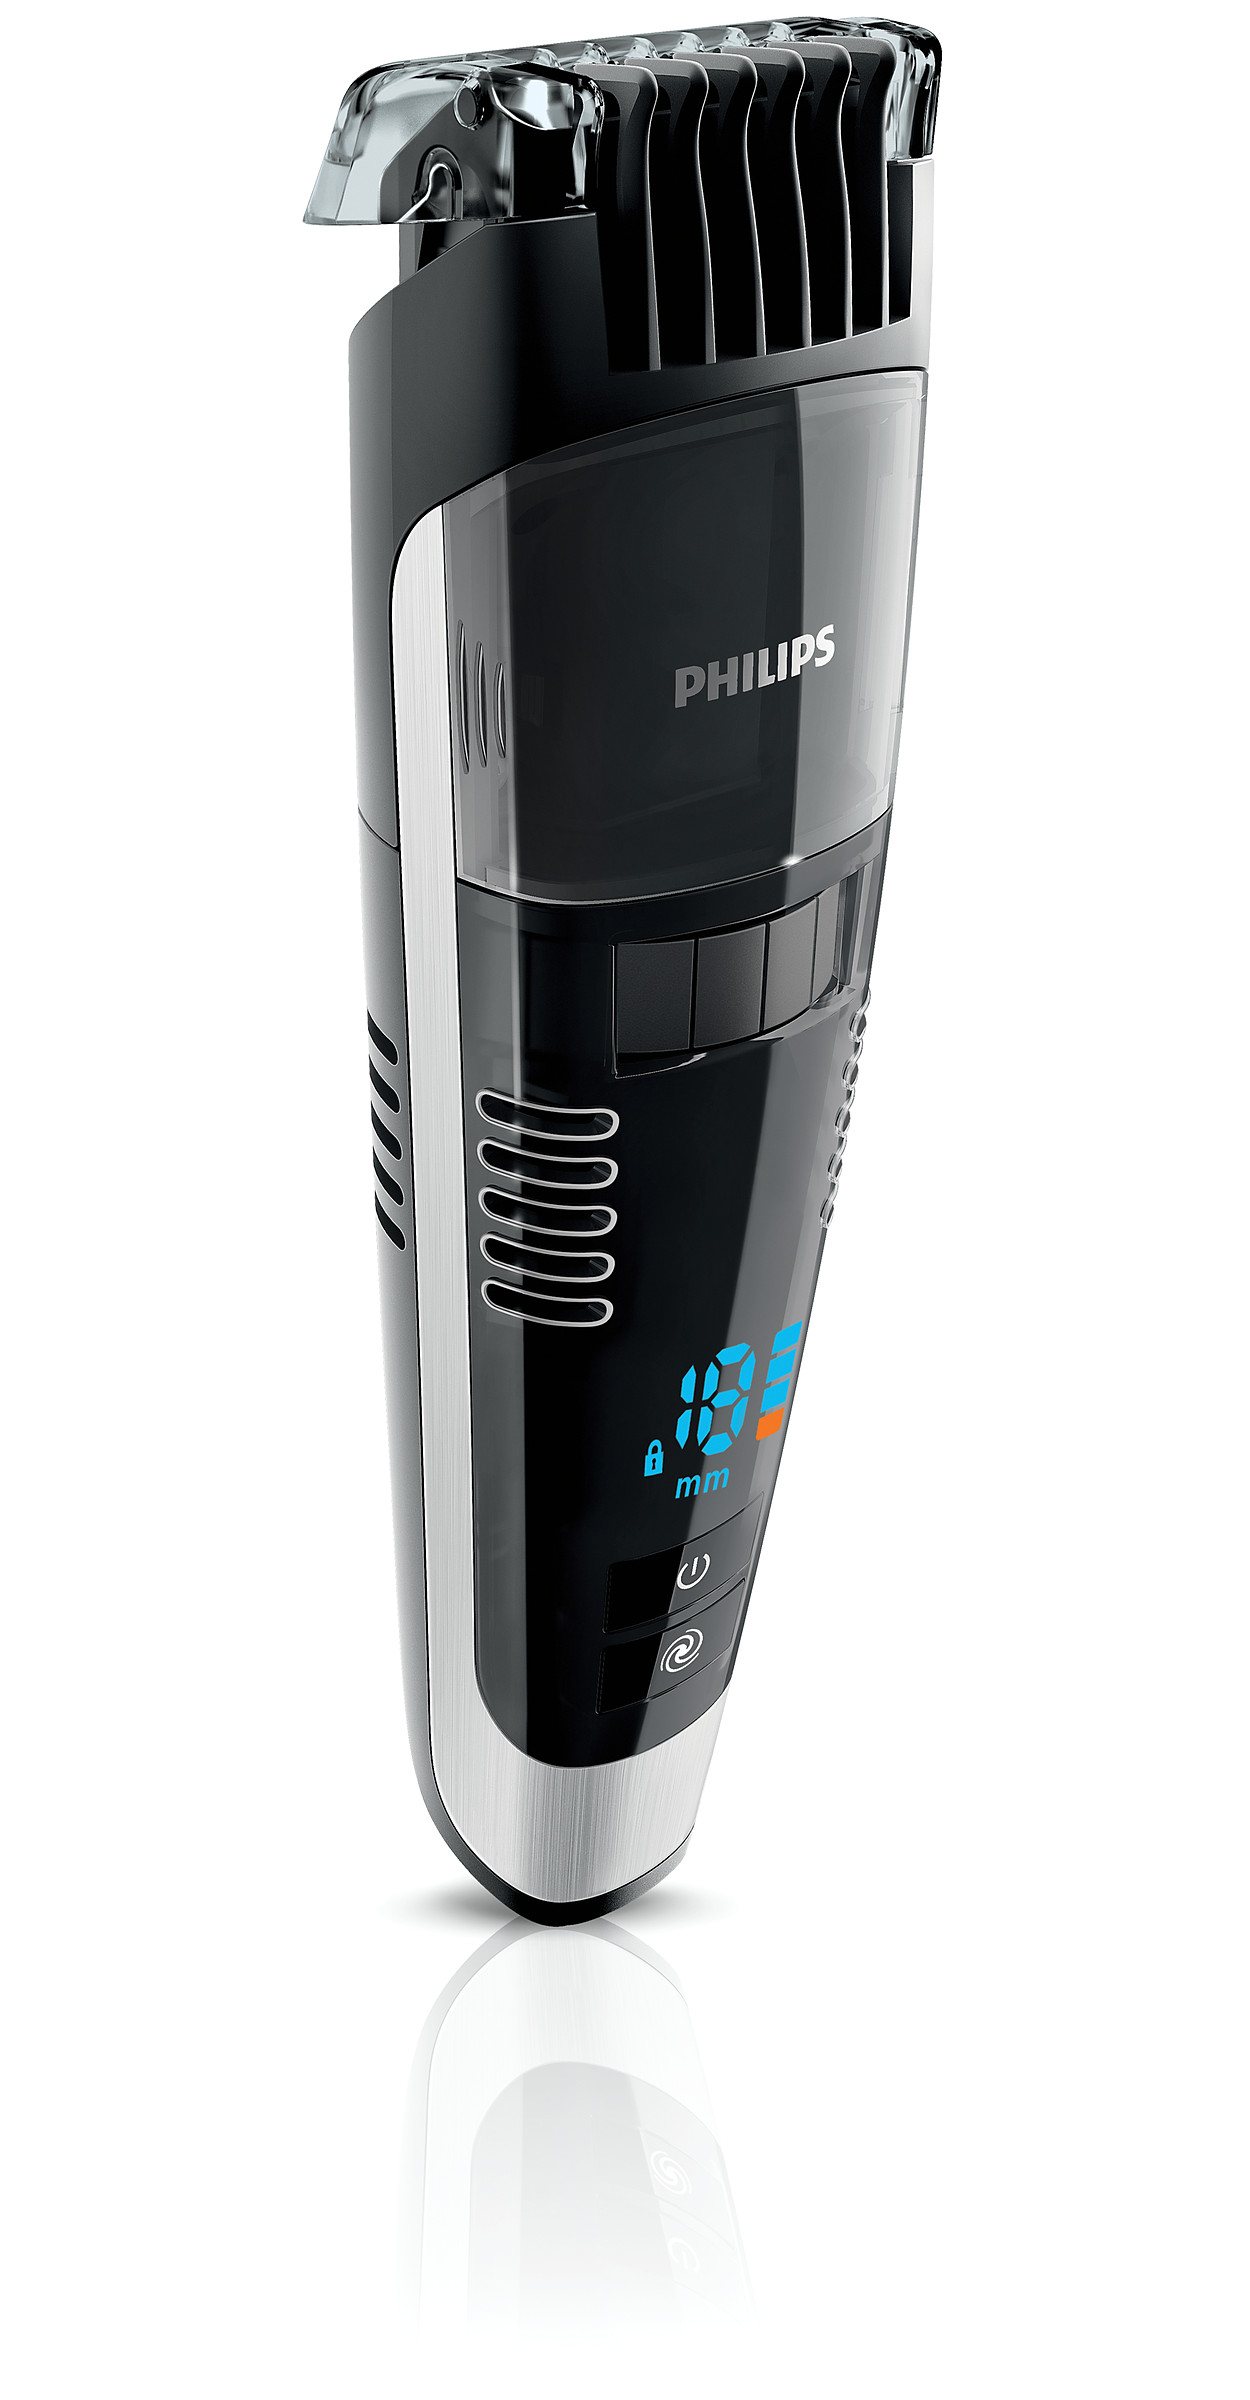 buy the philips beardtrimmer series 7000 vacuum beard trimmer qt4090 32. Black Bedroom Furniture Sets. Home Design Ideas